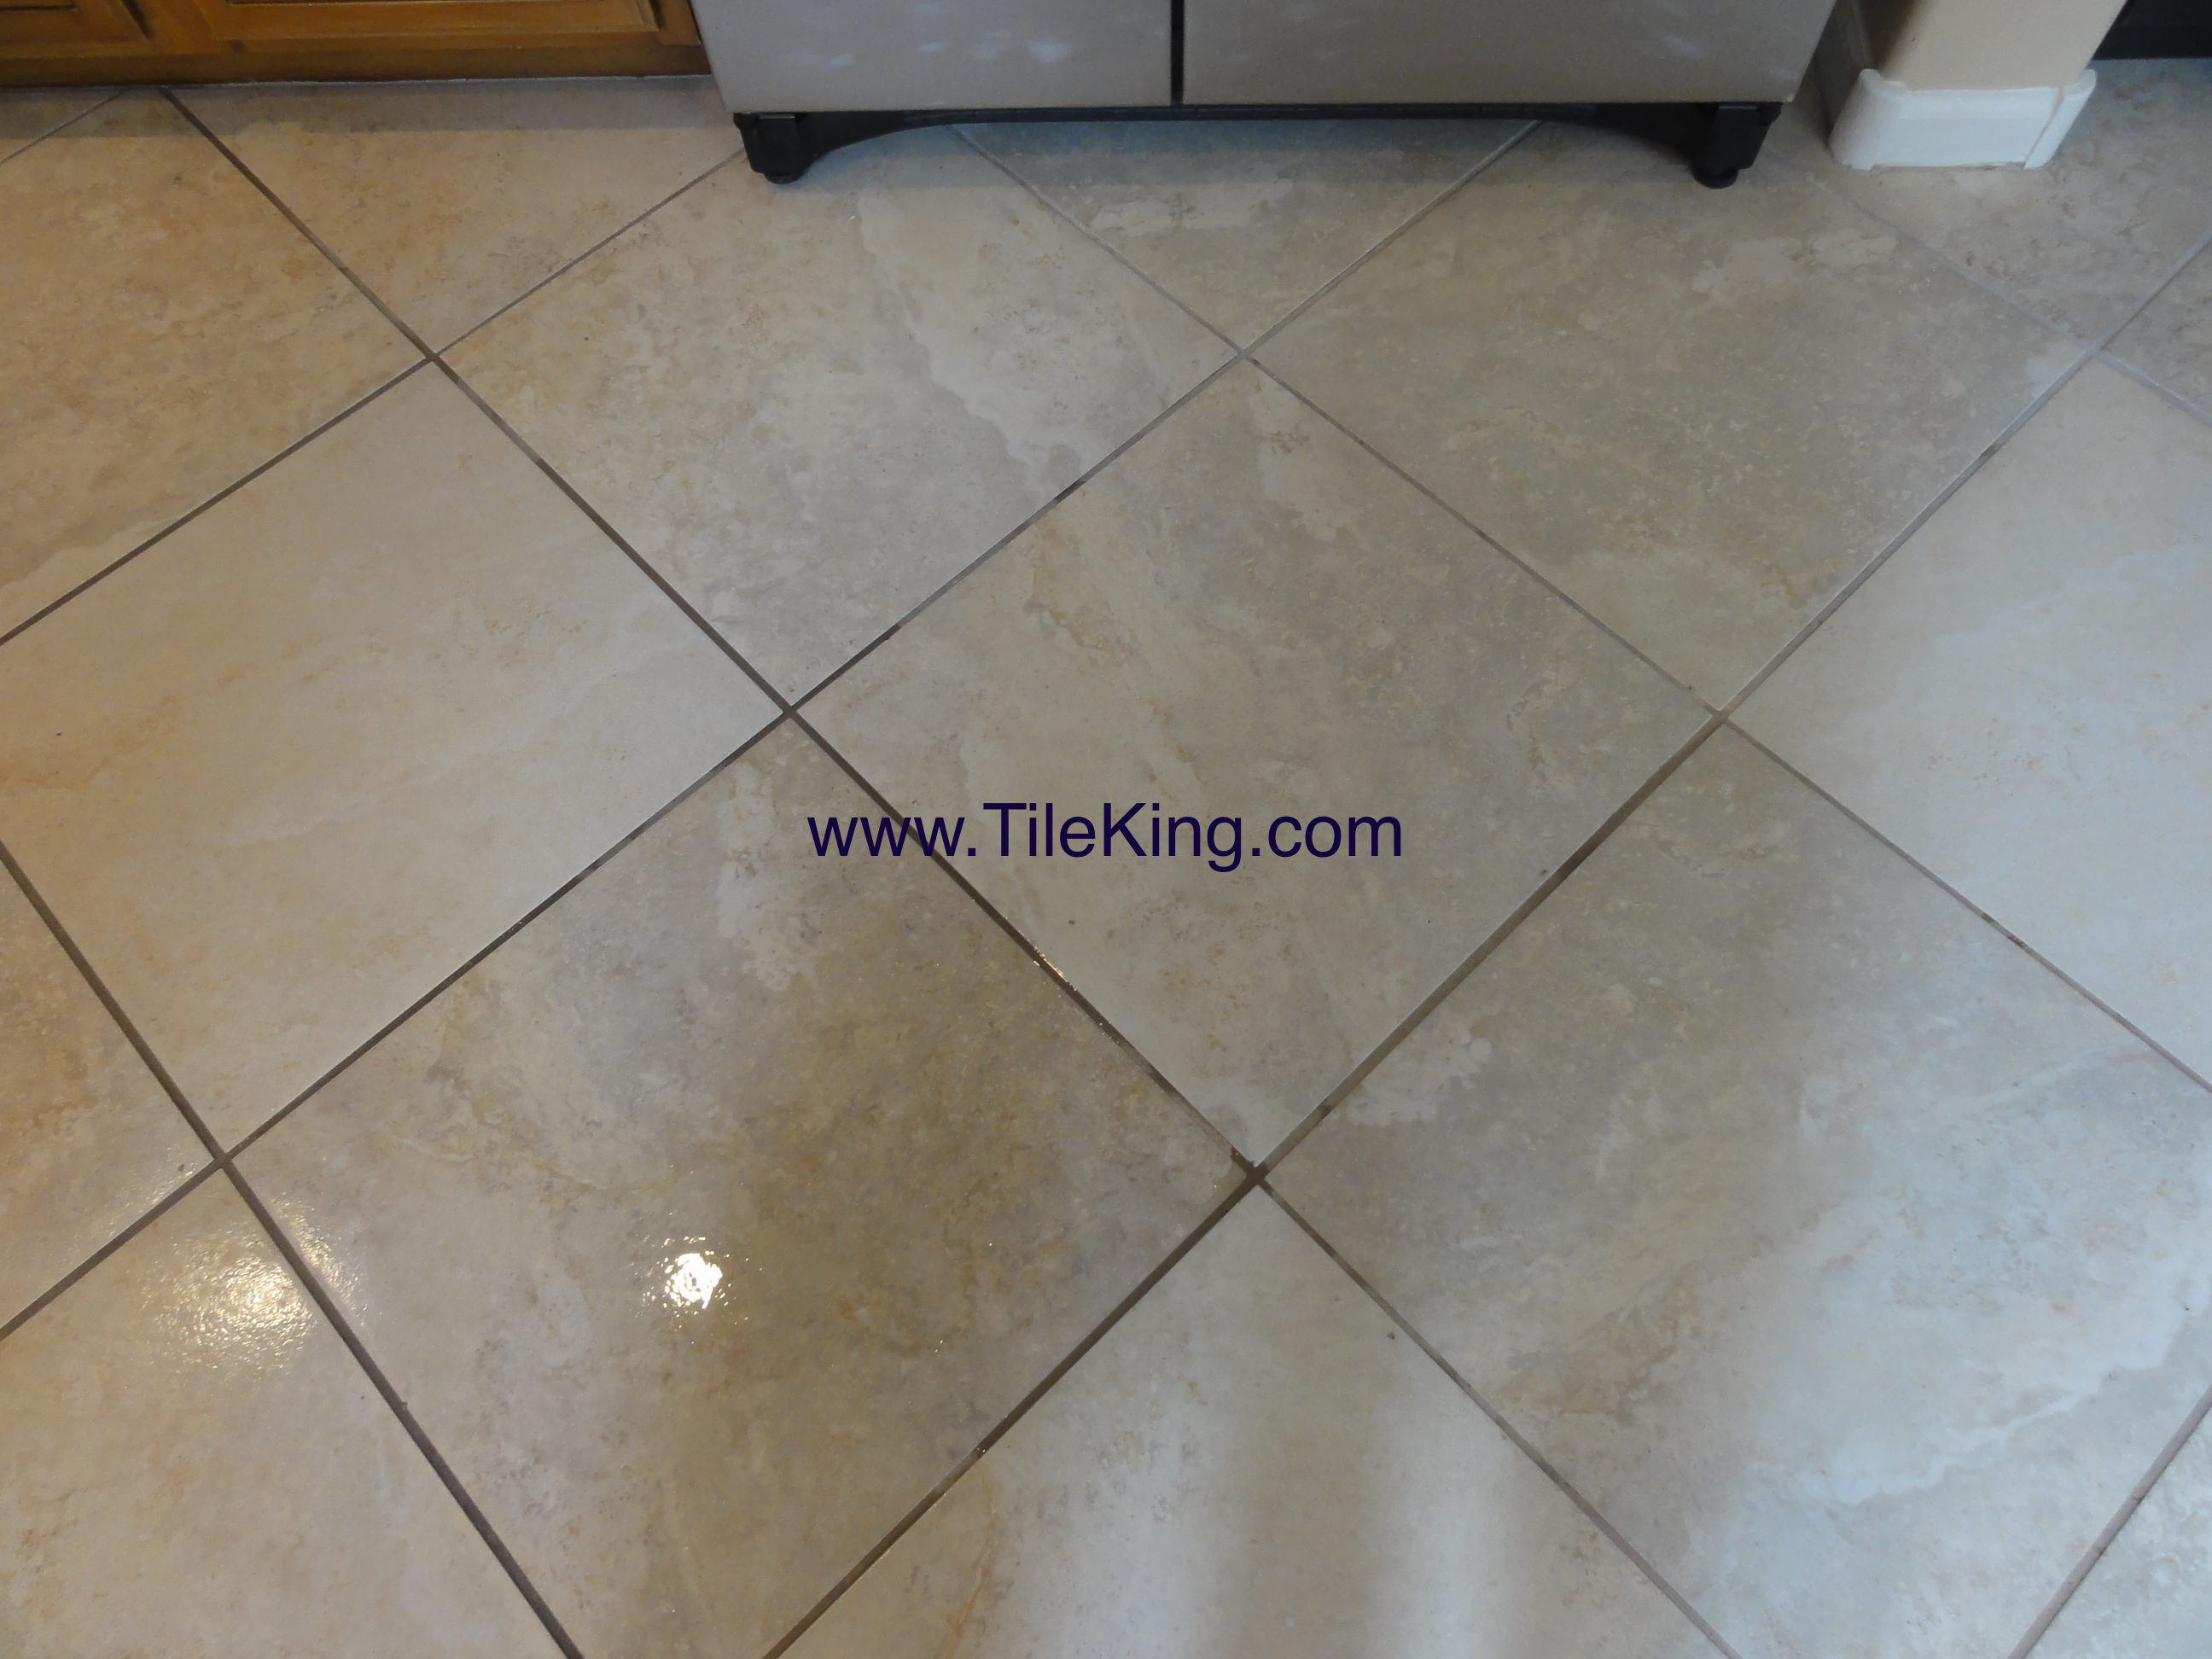 travertine tile before cleaning and sealing